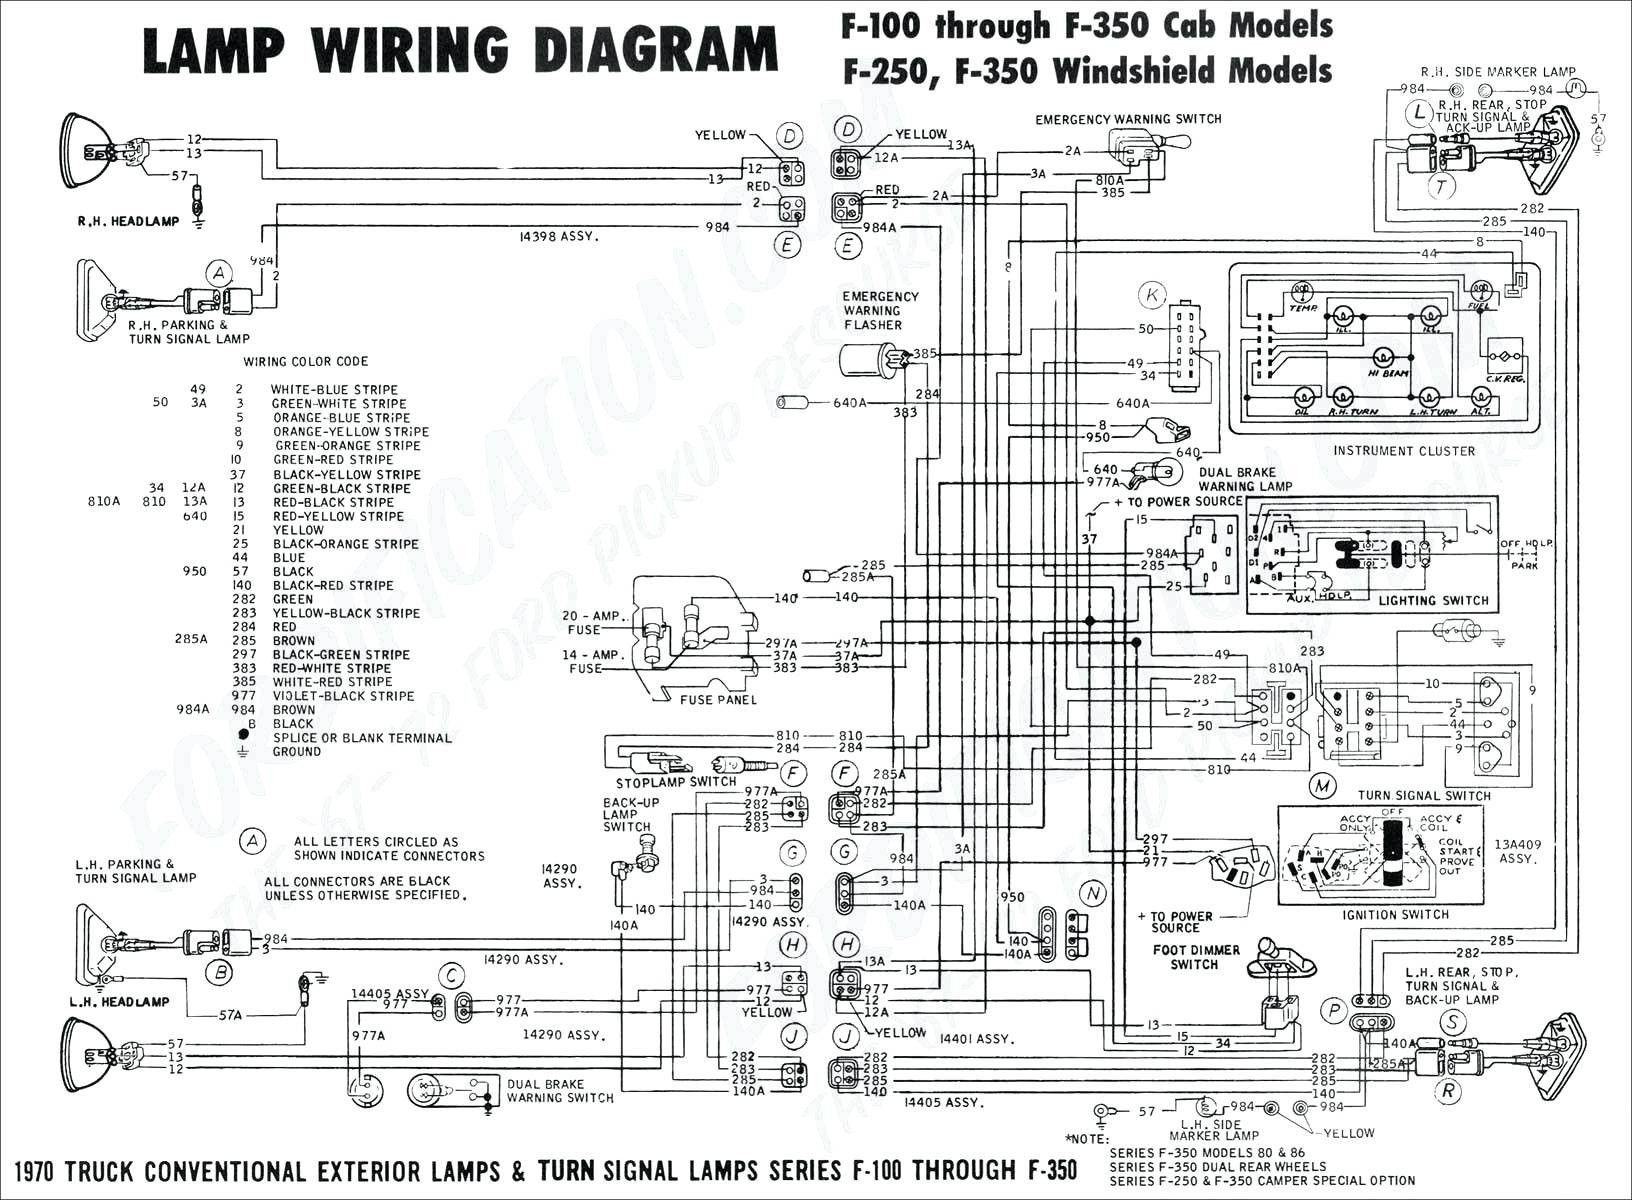 Yamaha R1 Integrated Tail Light Diagram Awesome